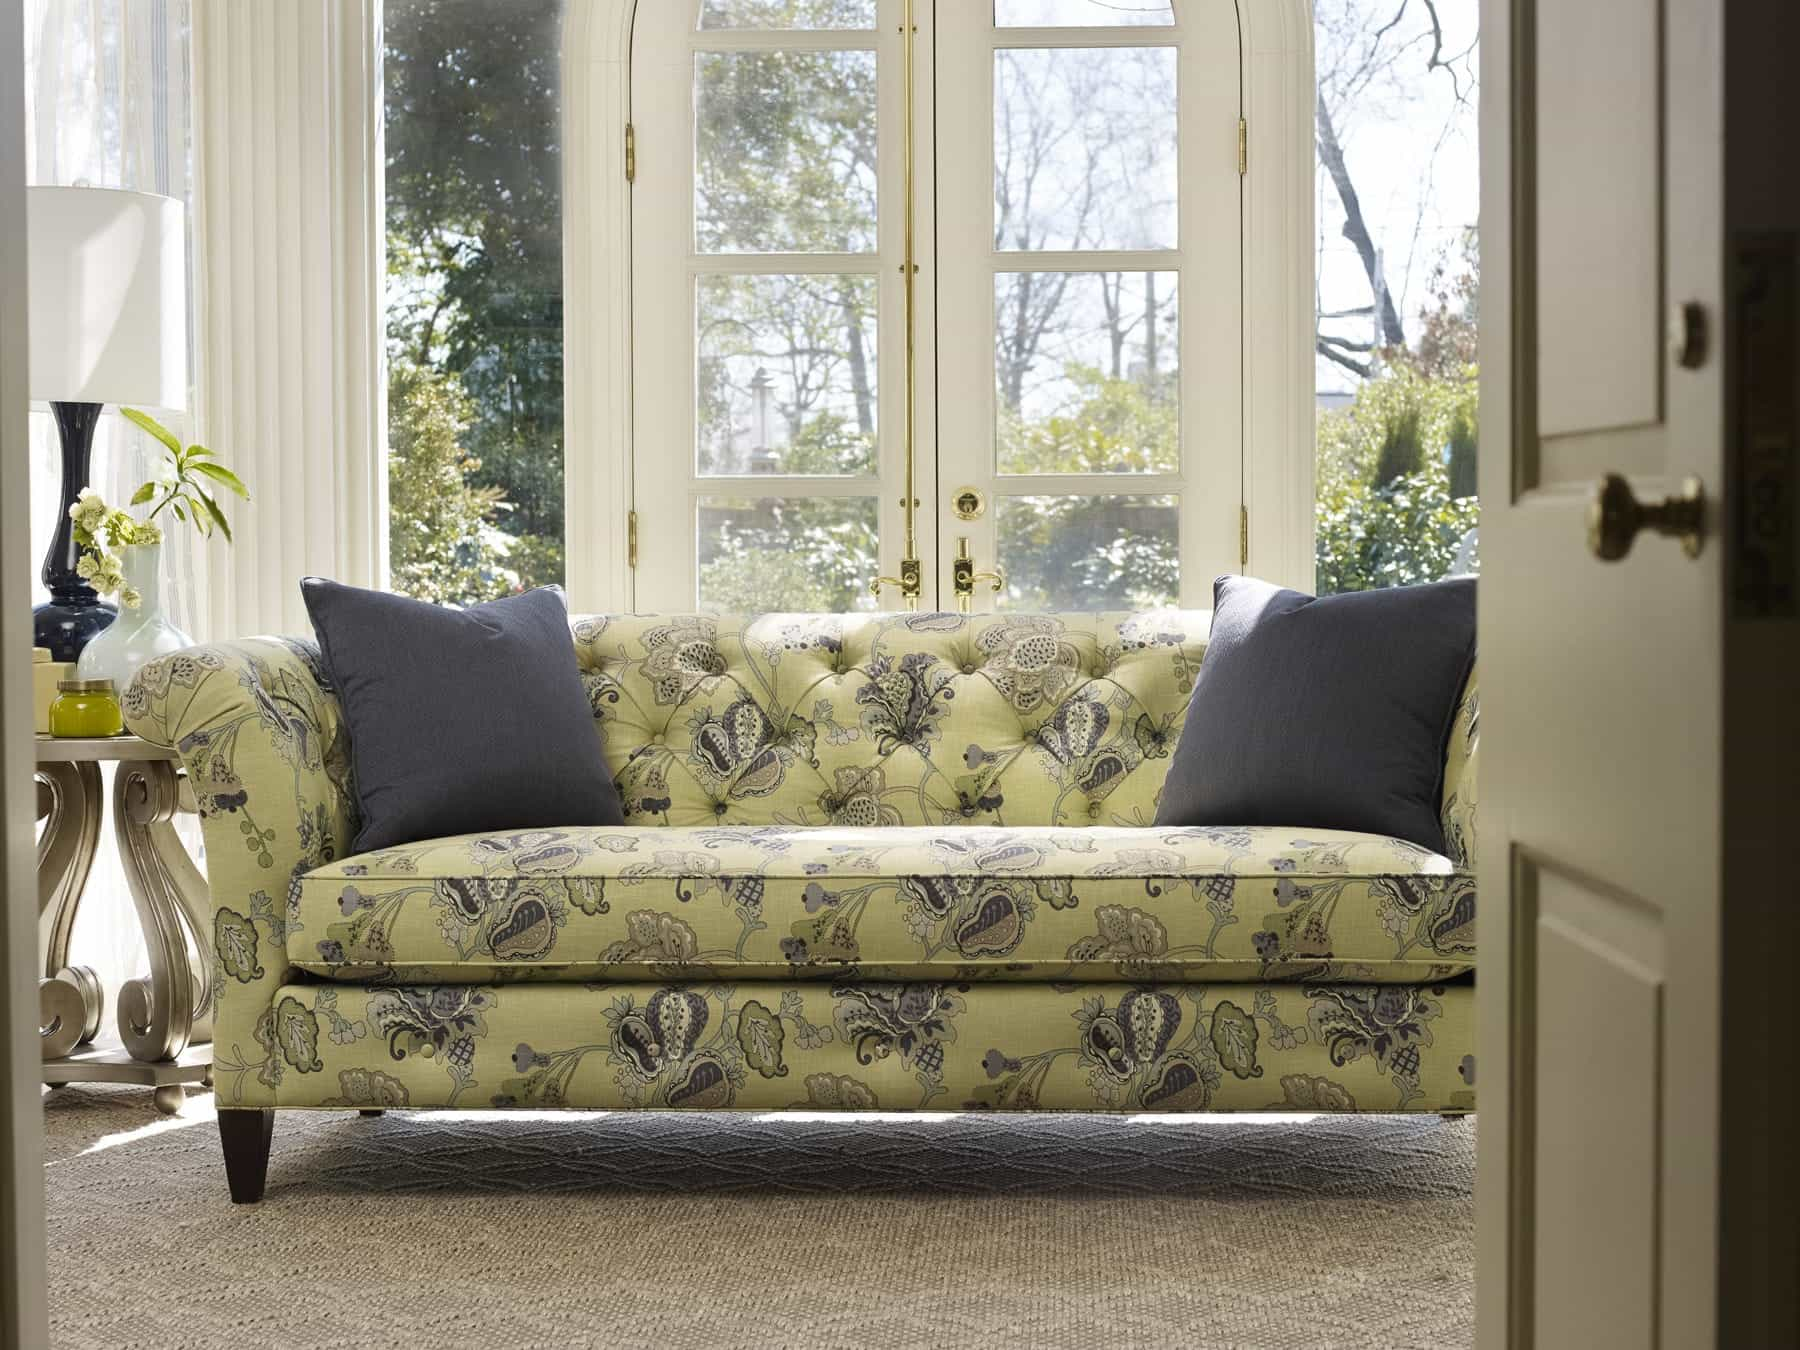 Featured Image of Classical Antique Floral Patterned Sofa